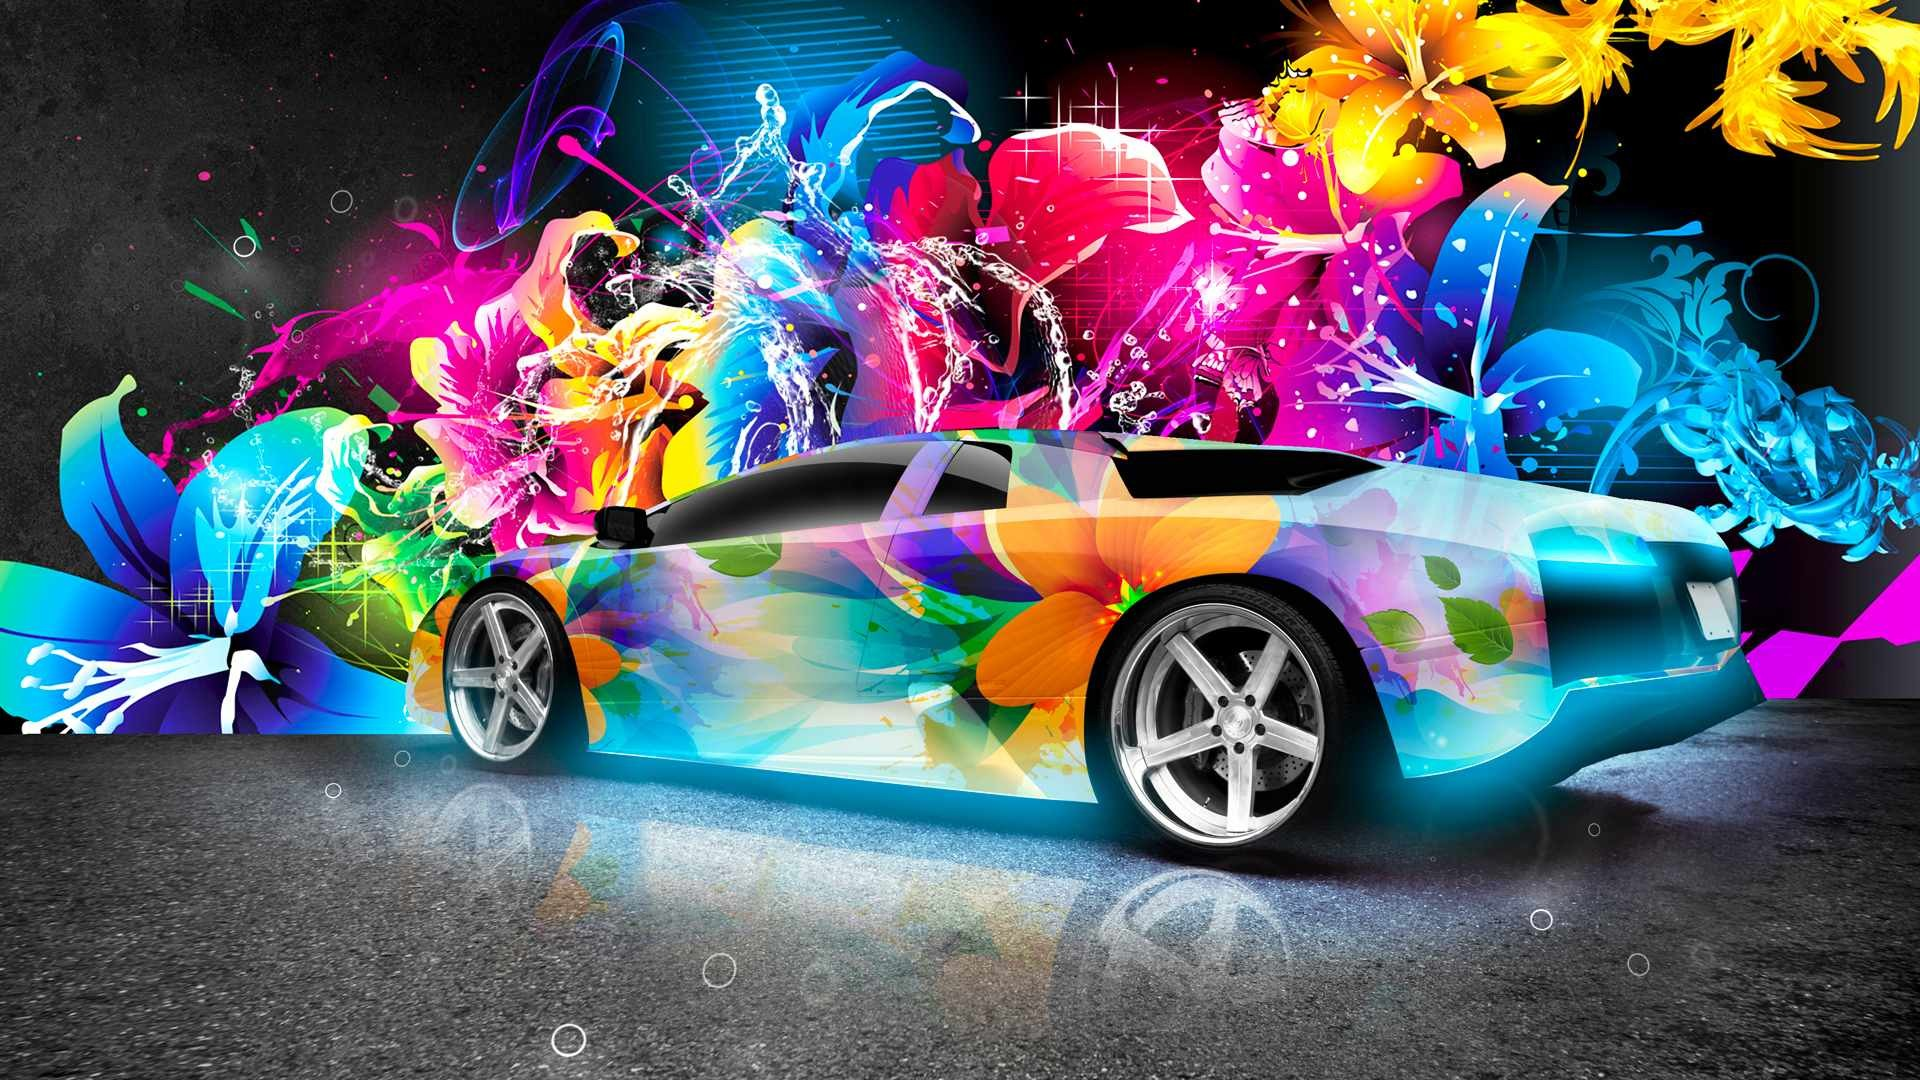 1920x1080 2015 Colorful lamborghini Most Luxurious car backgrounds 1080p .